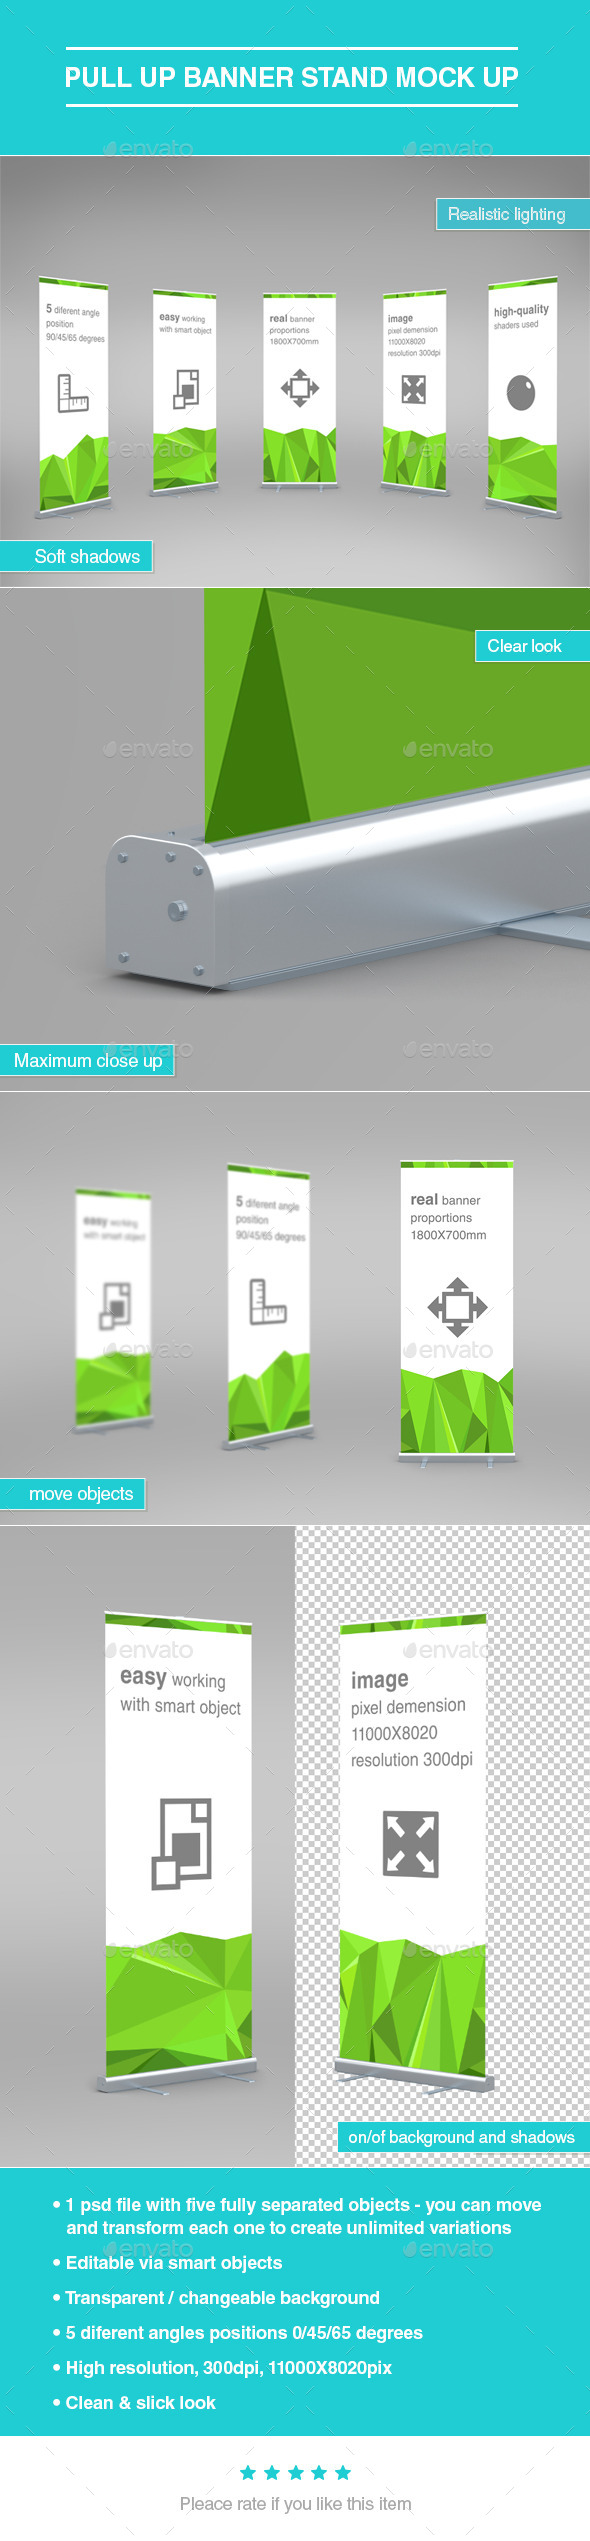 GraphicRiver Pull Up Banner Stand Mock-Up 10460118